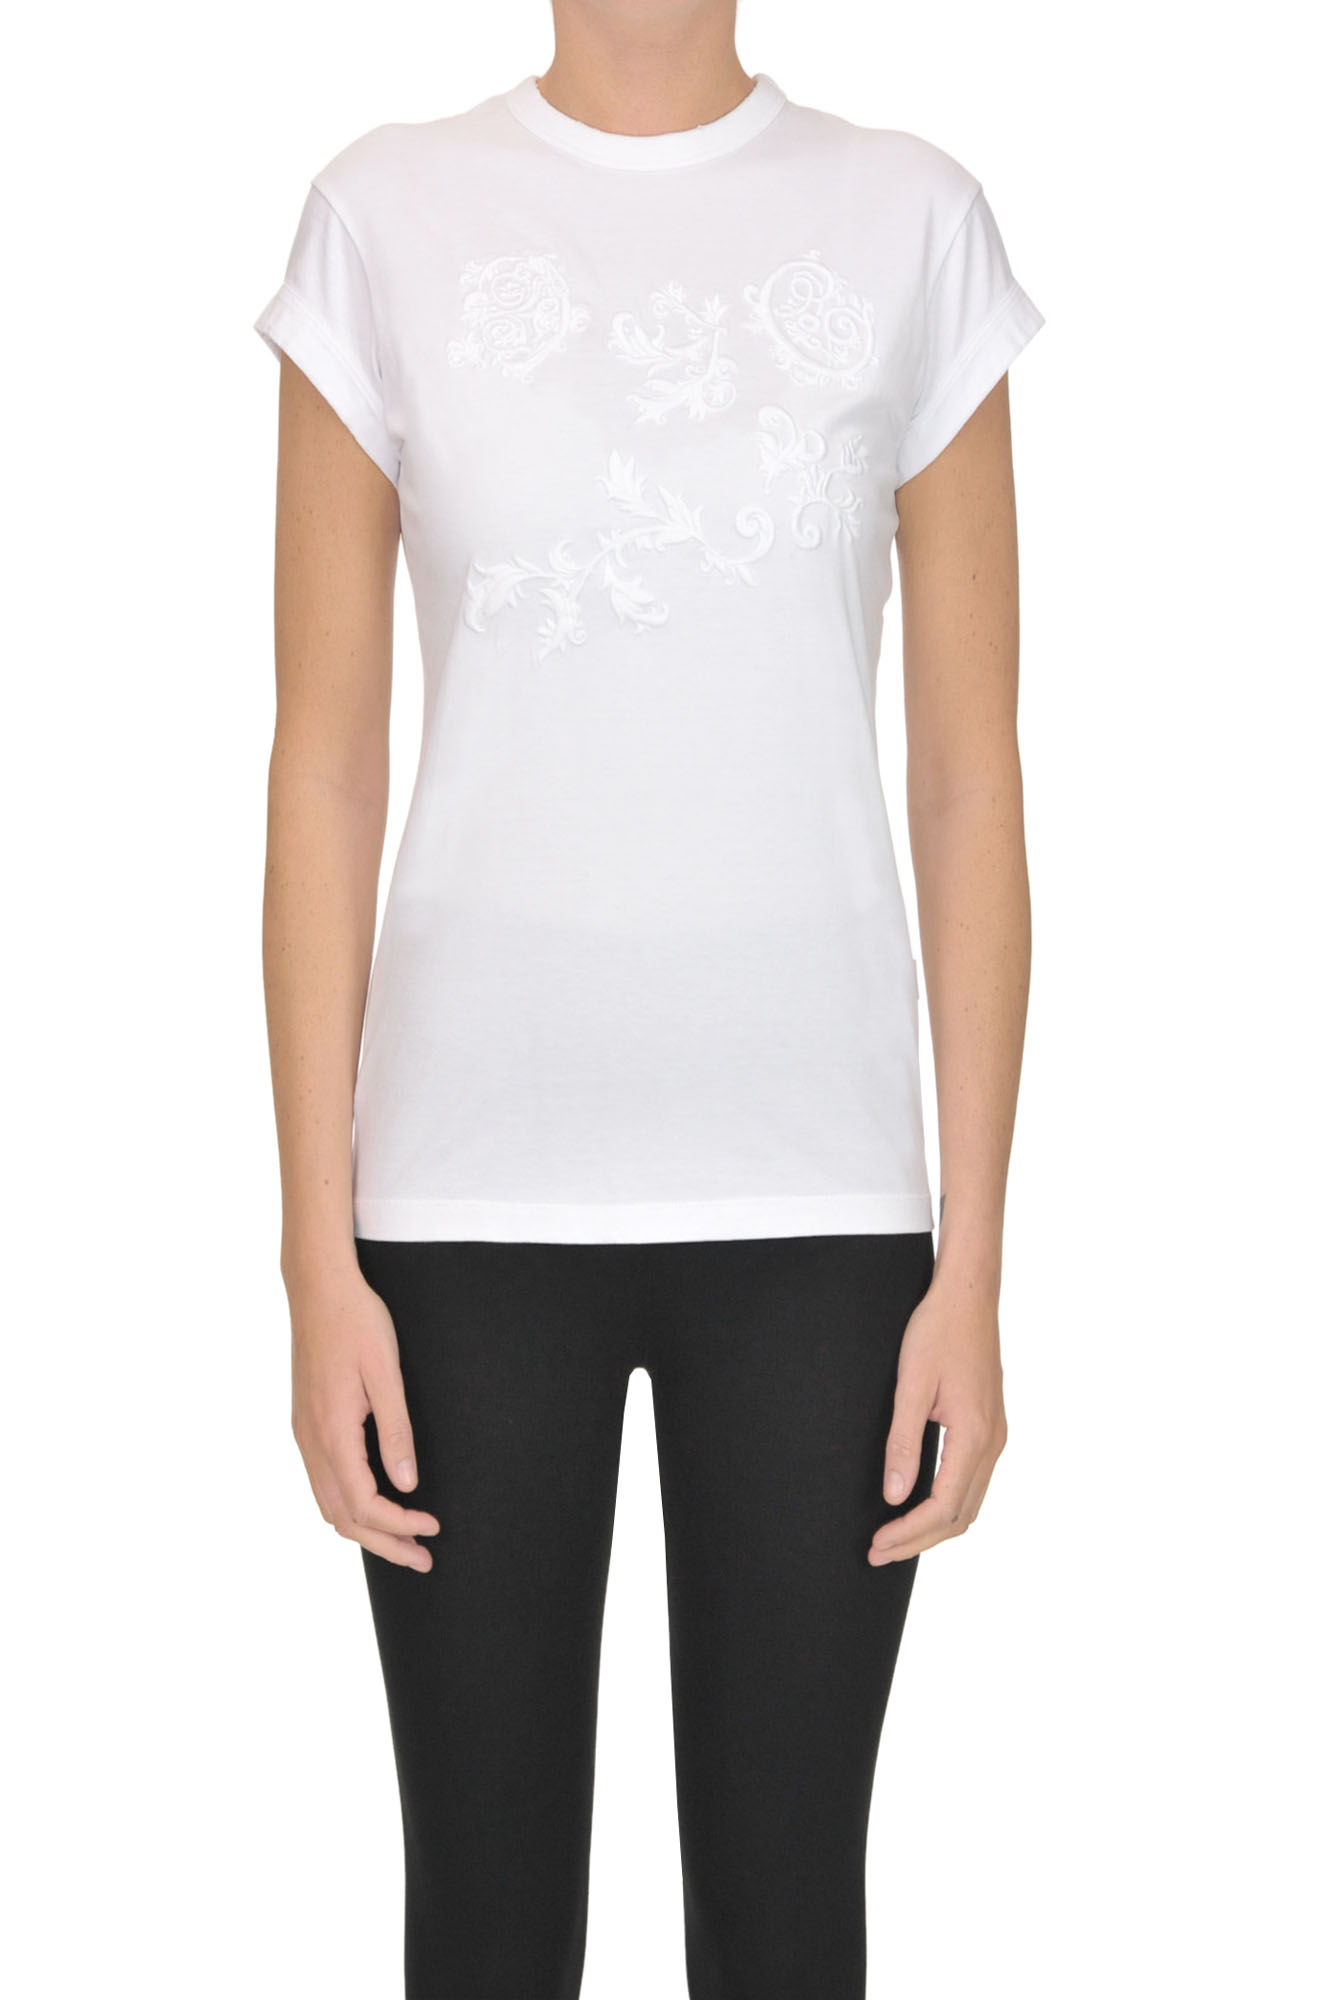 ChloÉ Embroidered T-Shirt In White